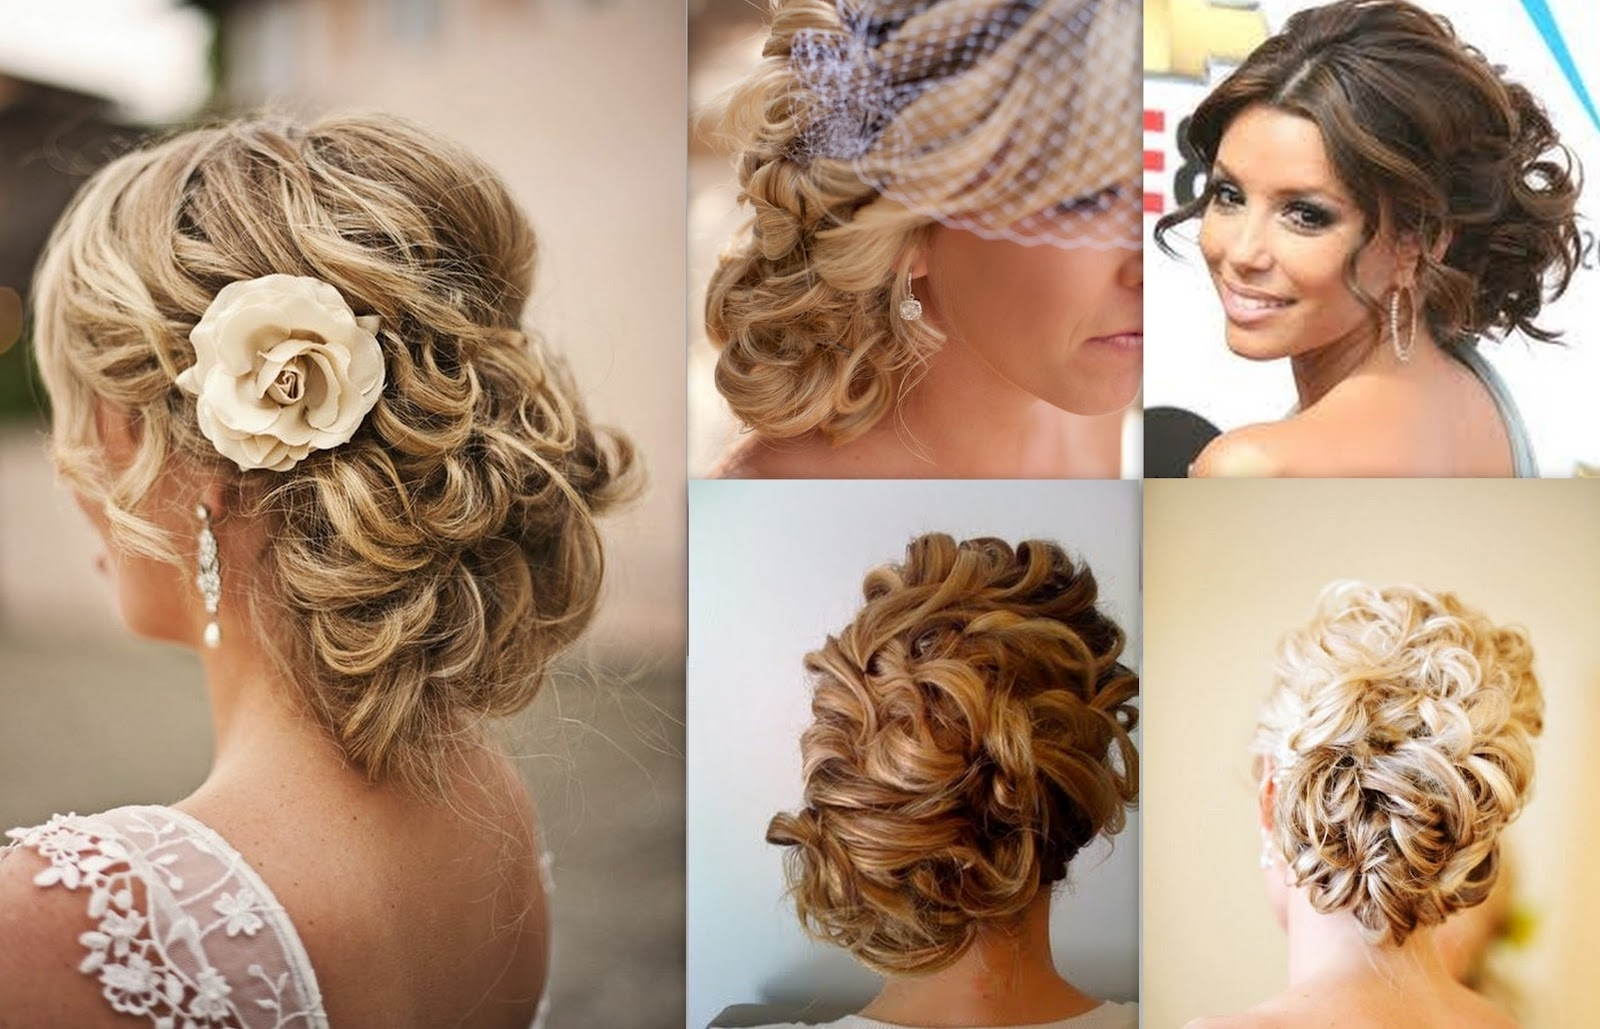 2018 Curly Side Bun Wedding Hairstyles Throughout Cute Modern Wedding Hairstyles Curly Side Bun (View 2 of 15)